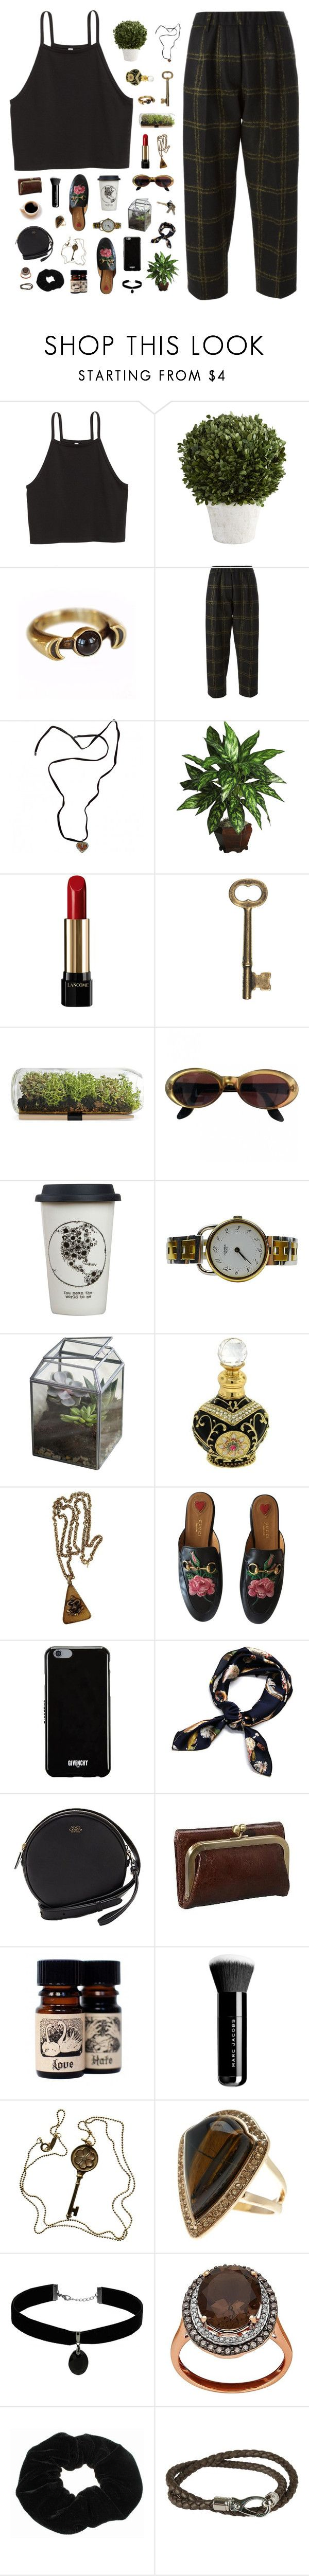 """""""12:29"""" by ajeungs ❤ liked on Polyvore featuring H&M, Pier 1 Imports, Pamela Love, Forte Forte, Baccarat, Lancôme, Gucci, Natural Life, Dot & Bo and Trifari"""